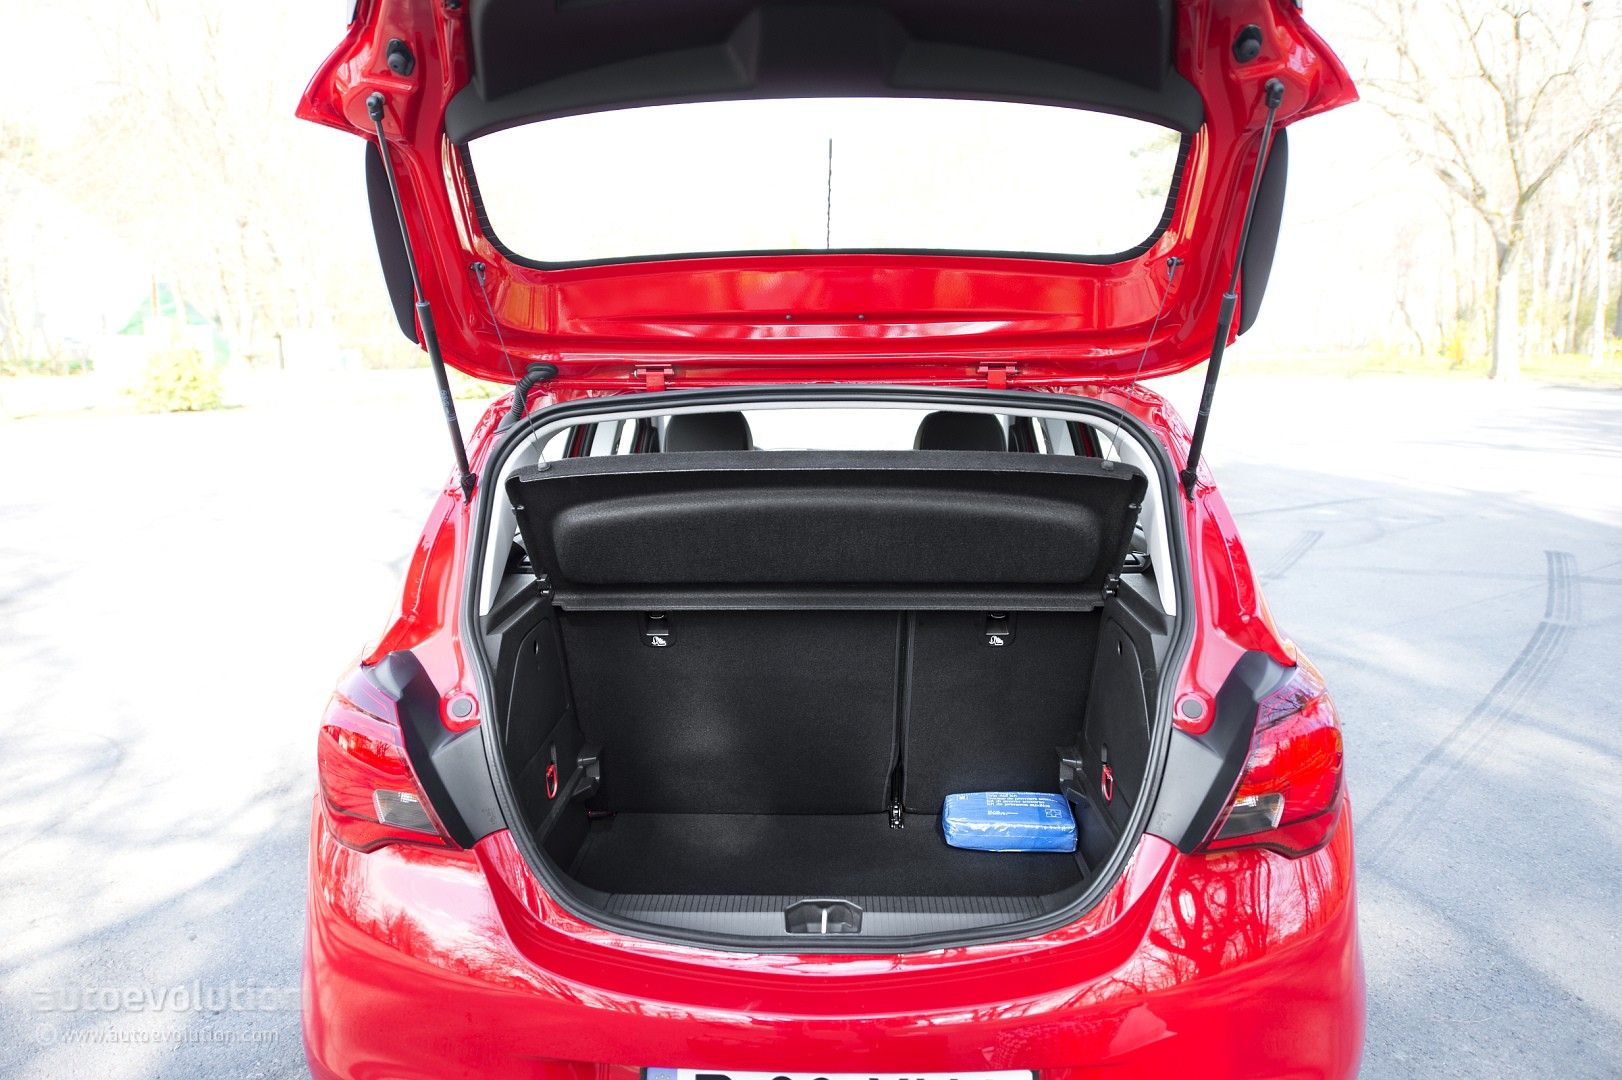 United Luggage Size 2015 Opel Corsa Review Autoevolution